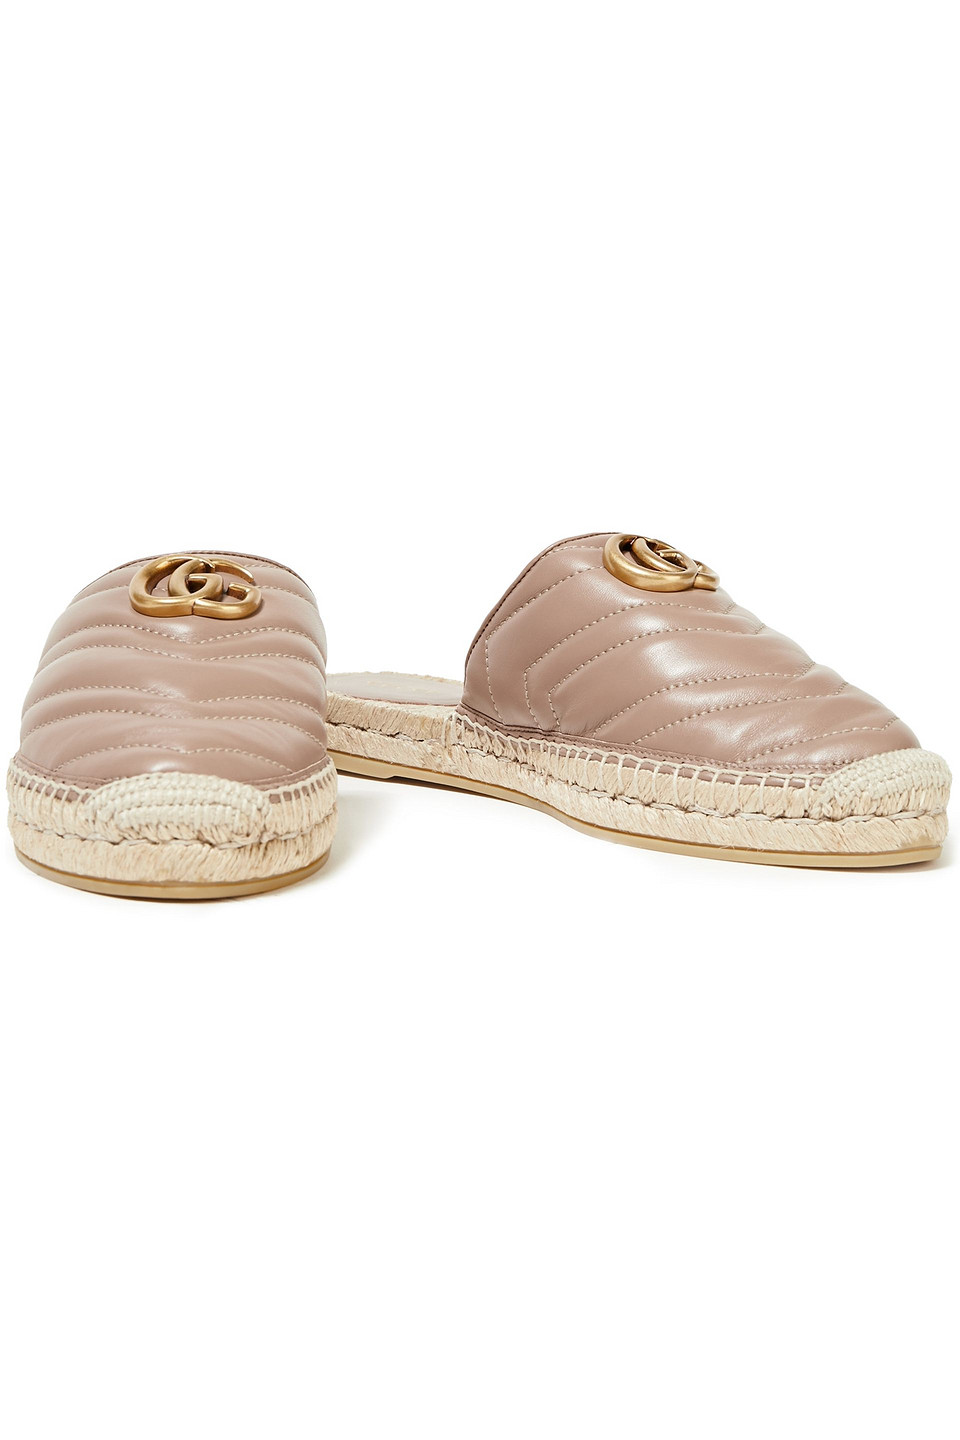 GUCCI | Gucci Woman Logo-appliqued Quilted Leather Espadrille Slippers Mushroom | Clouty